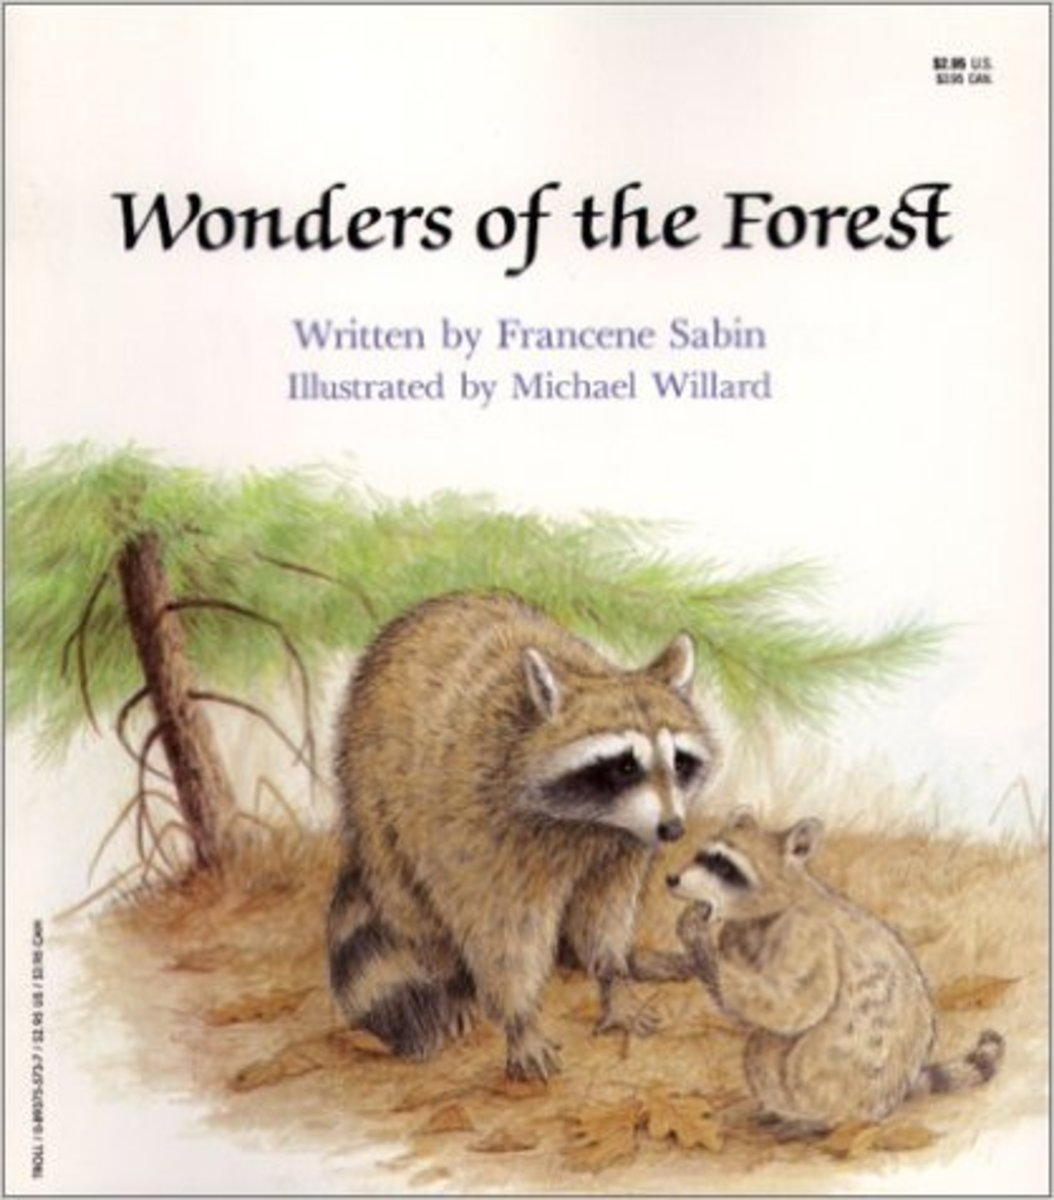 Wonders Of The Forest by Francene Sabin  - Images are from amazon.com.